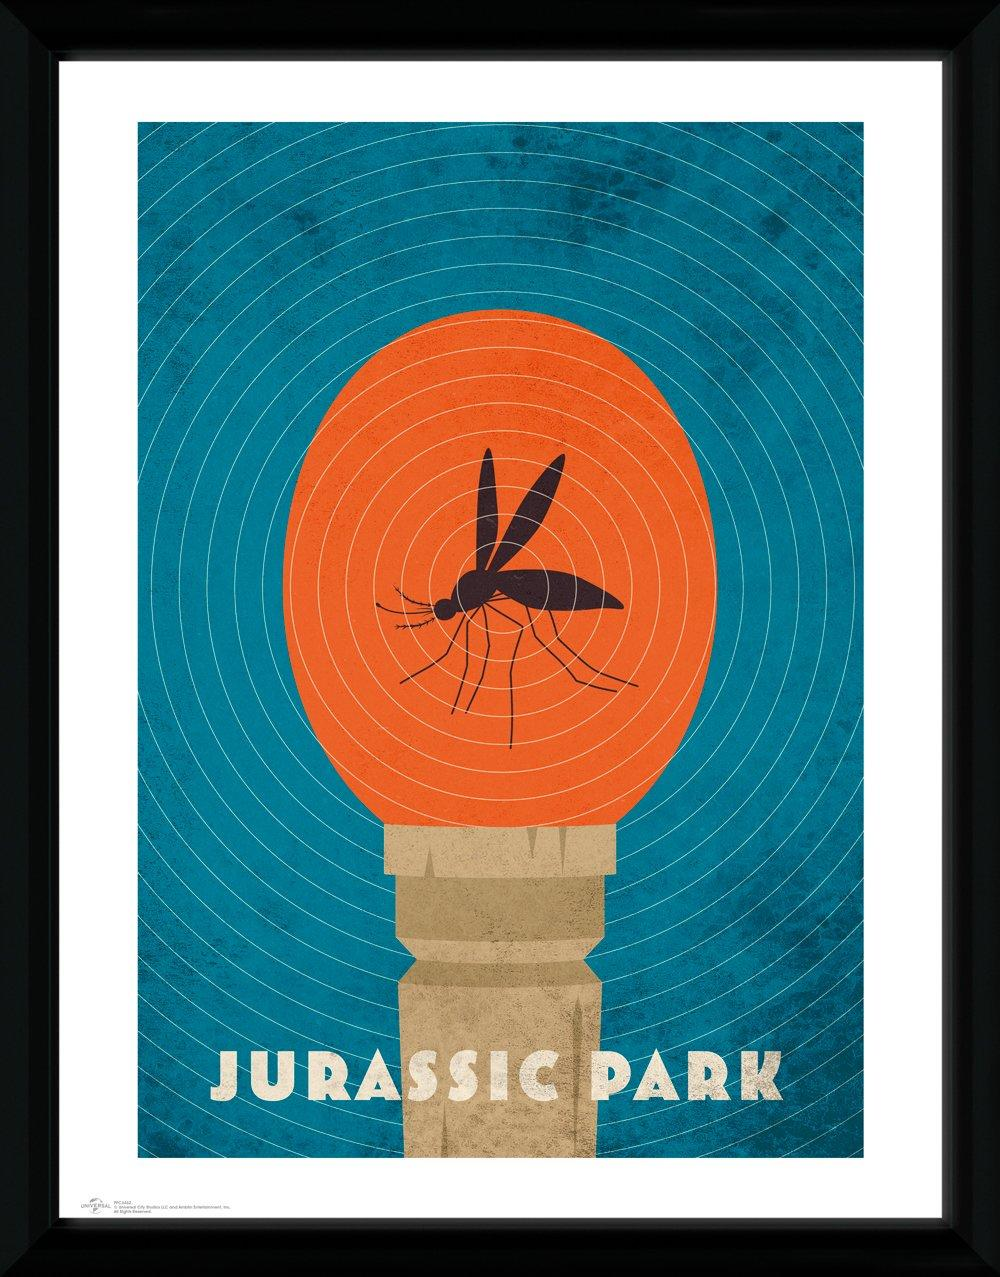 JURASSIC PARK - Collector Print 30X40 - Amber